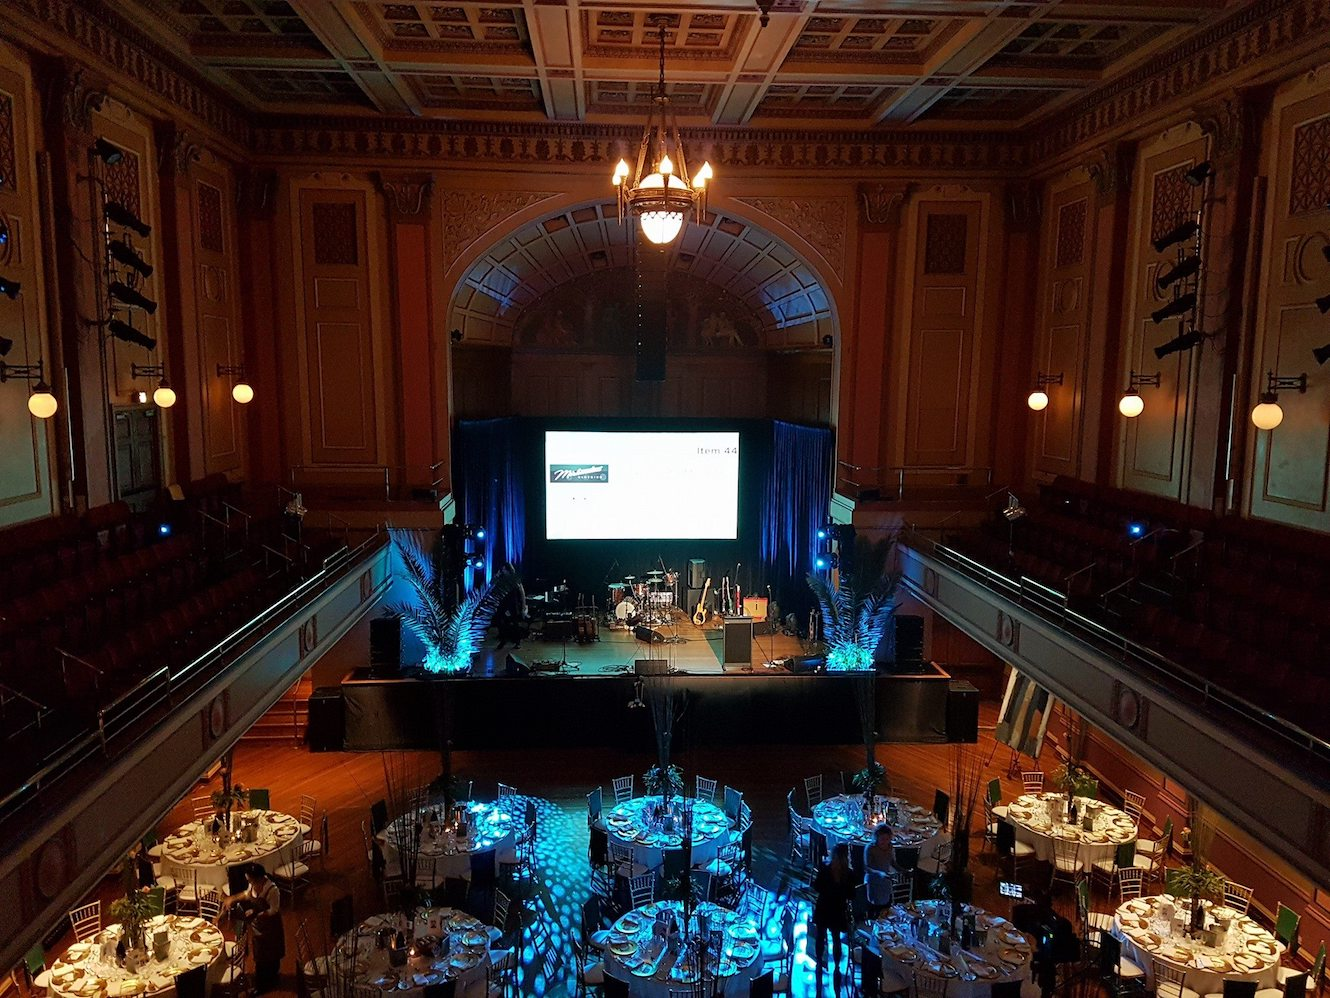 Getting ready to have a ball at Newcastle Town Hall. Photo @HMRI.